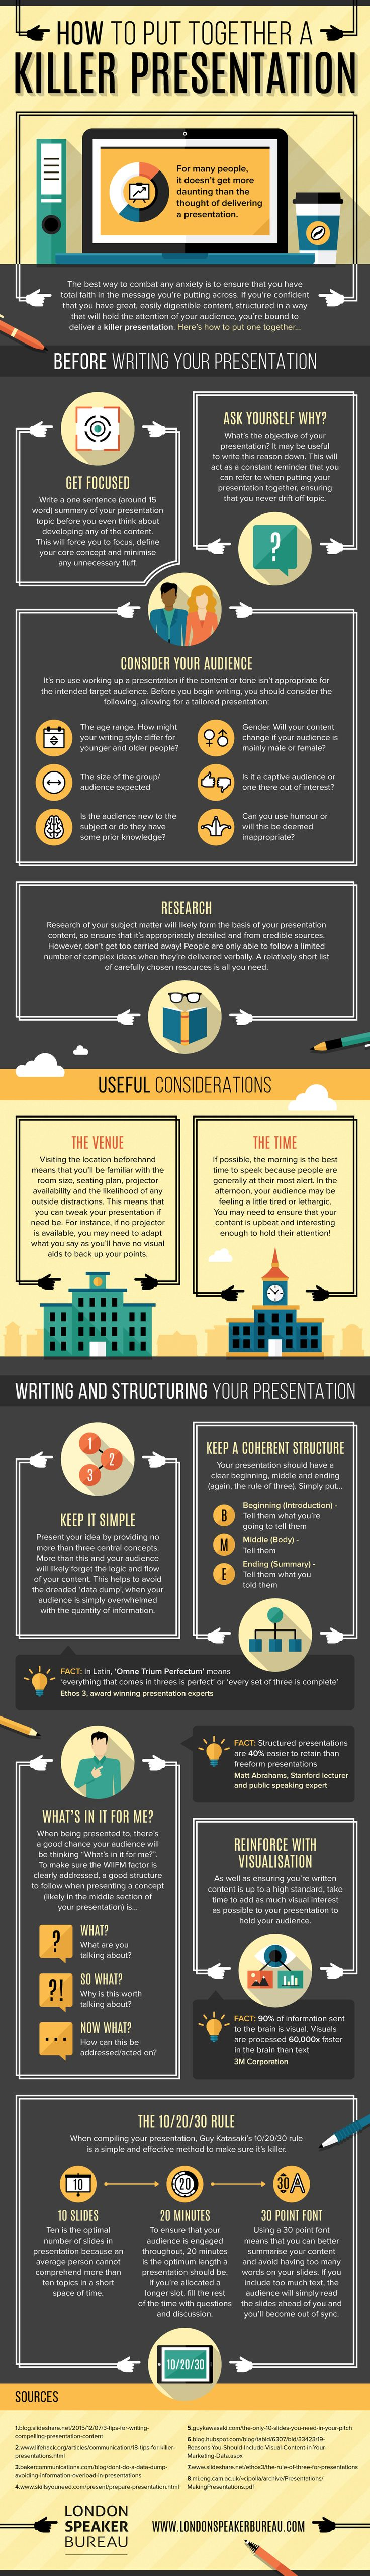 How to Put Together a Killer Presentation in 13 Simple Steps – Imgur